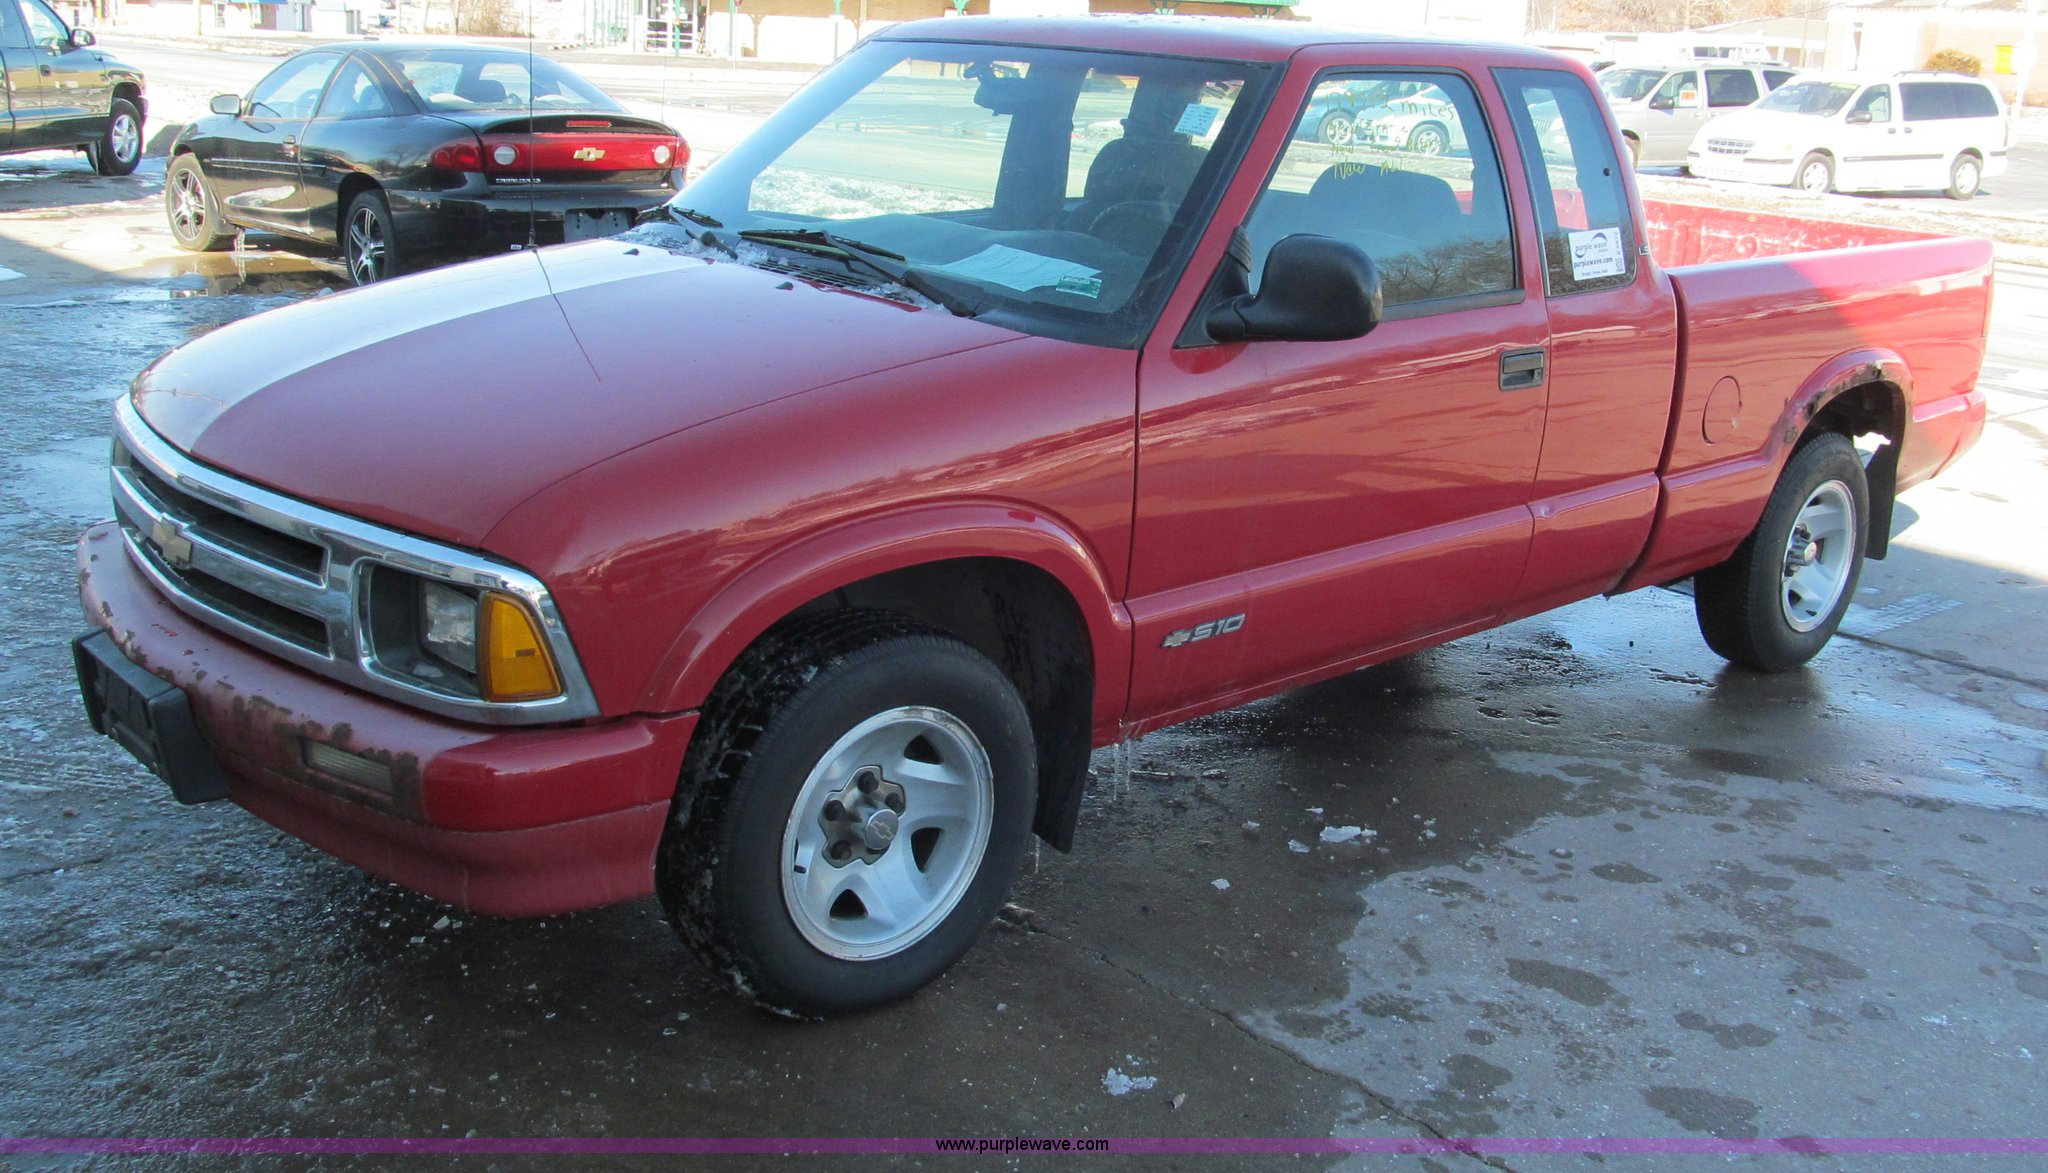 1995 Chevrolet S10 Ls Extended Cab Pickup Truck In Harrisonville Mo Item E5872 Sold Purple Wave